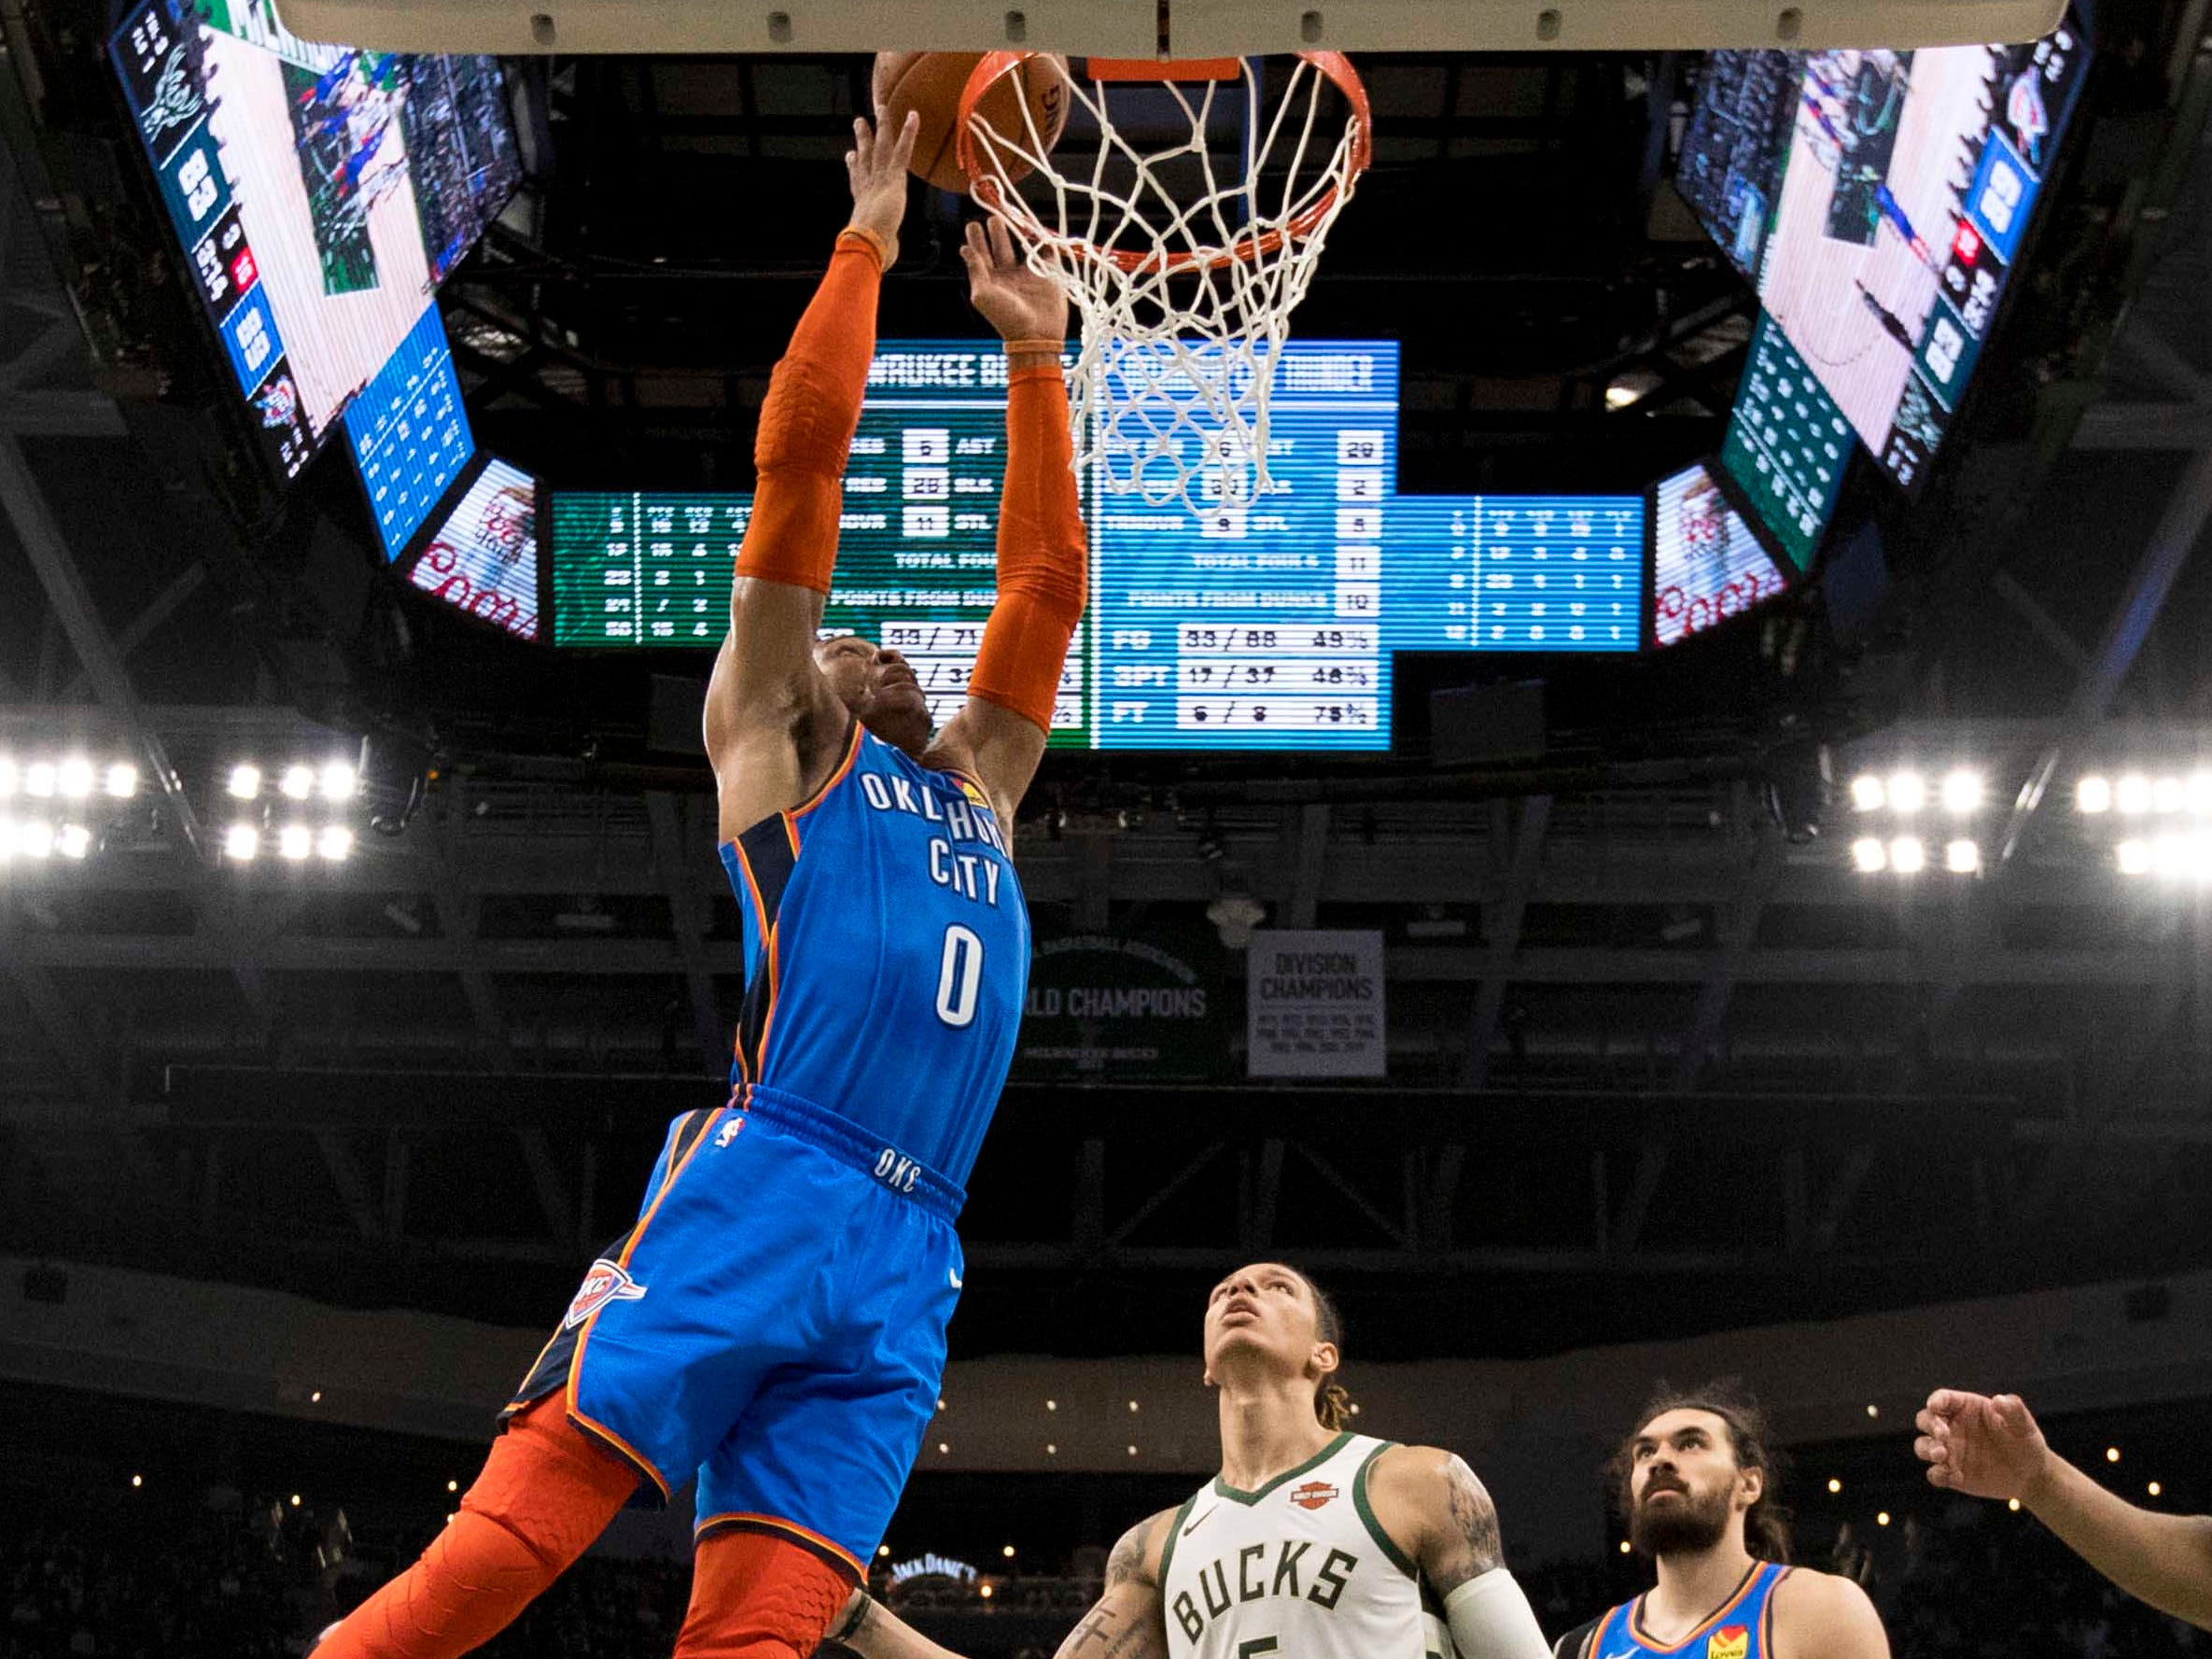 126. Russell Westbrook (April 10): 15 points, 17 assists, 11 rebounds in 127-116 win over Bucks  (33rd of season).